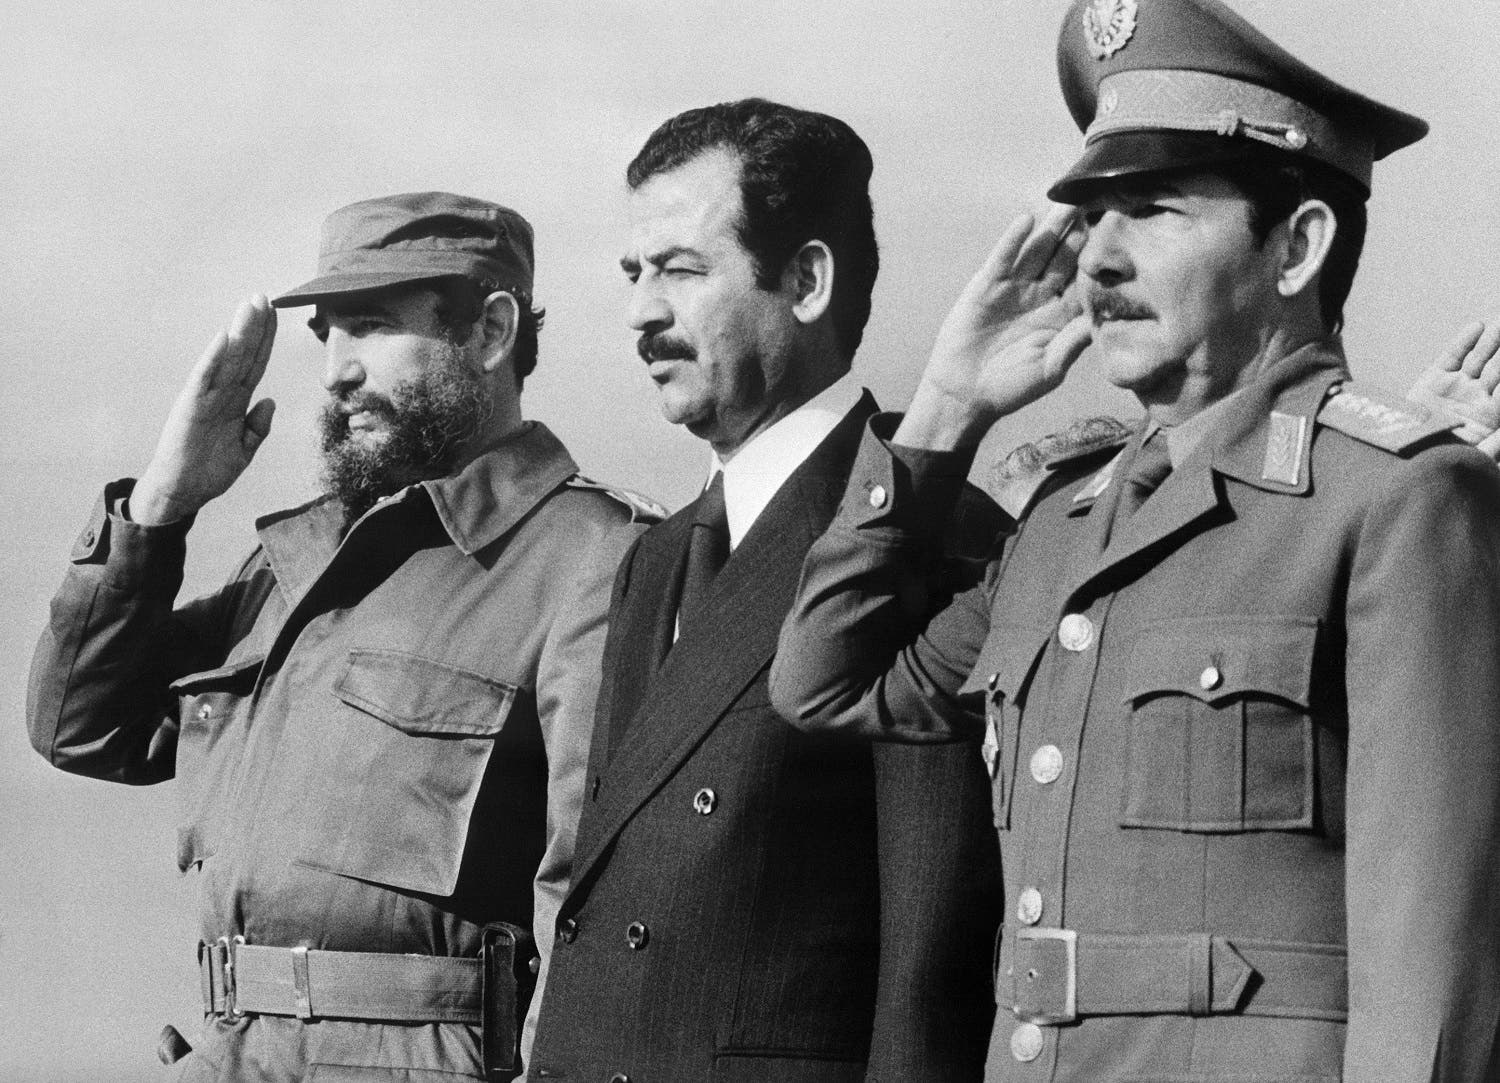 This handout photo taken and released by Prensa Latina on January 30, 1979 in Havana, shows Iraqi vice-president Saddam Hussein (C) standing during his visit to Cuba with Cuban President Fidel Castro (L) and Defense minister General Raul Castro. Cuban revolutionary icon Fidel Castro died late on November 25, 2016 in Havana, his brother announced on national television. PRENSA LATINA / AFP